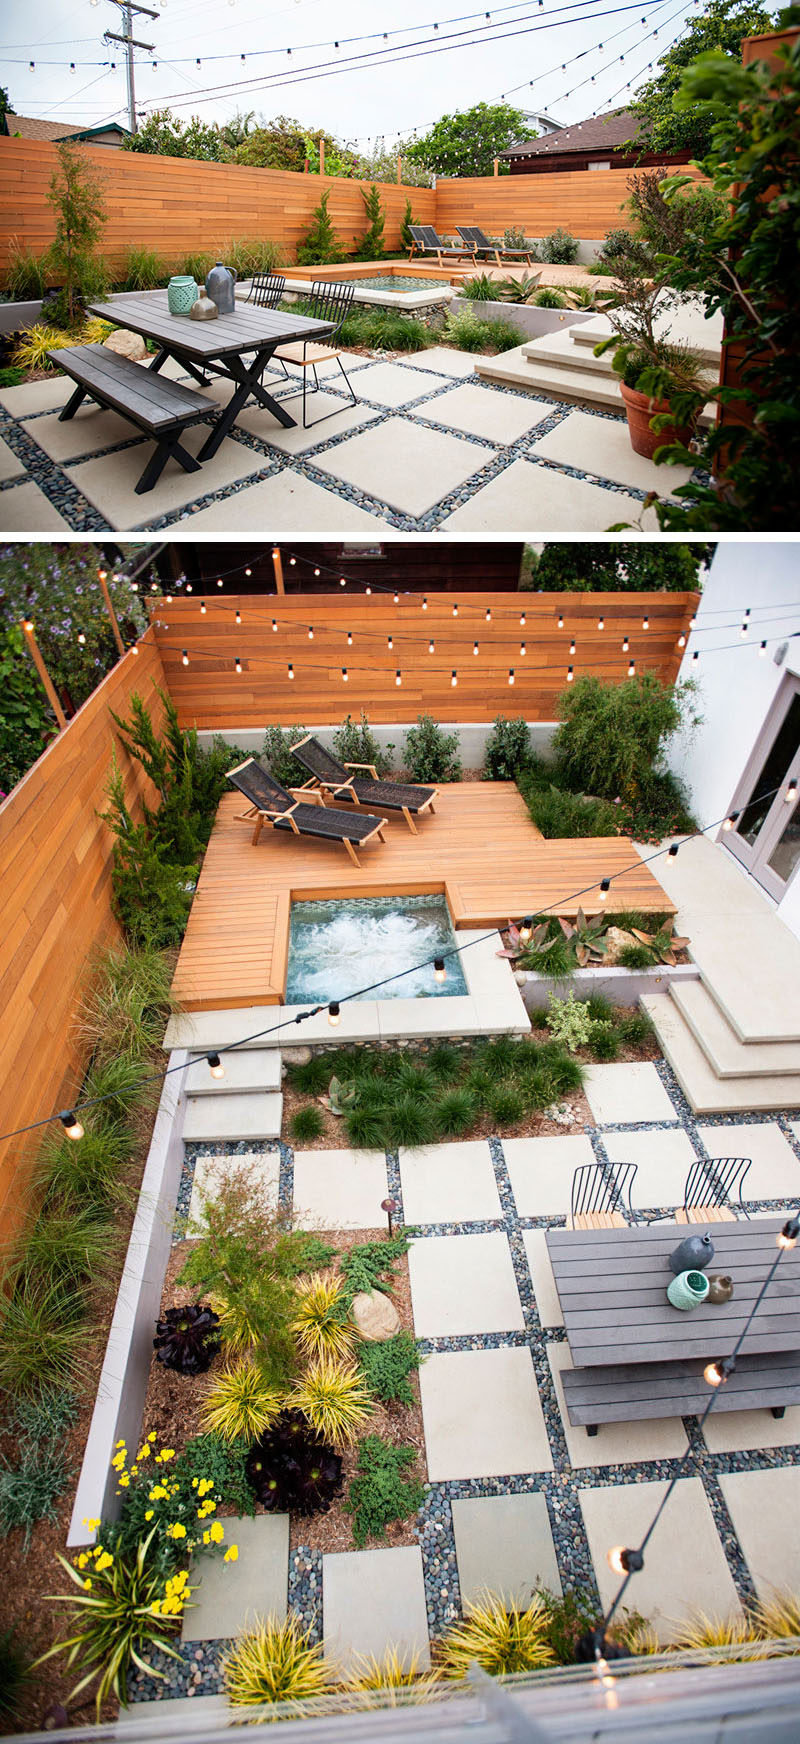 Landscaping design ideas 11 backyards designed for entertaining the multiple levels of this backyard